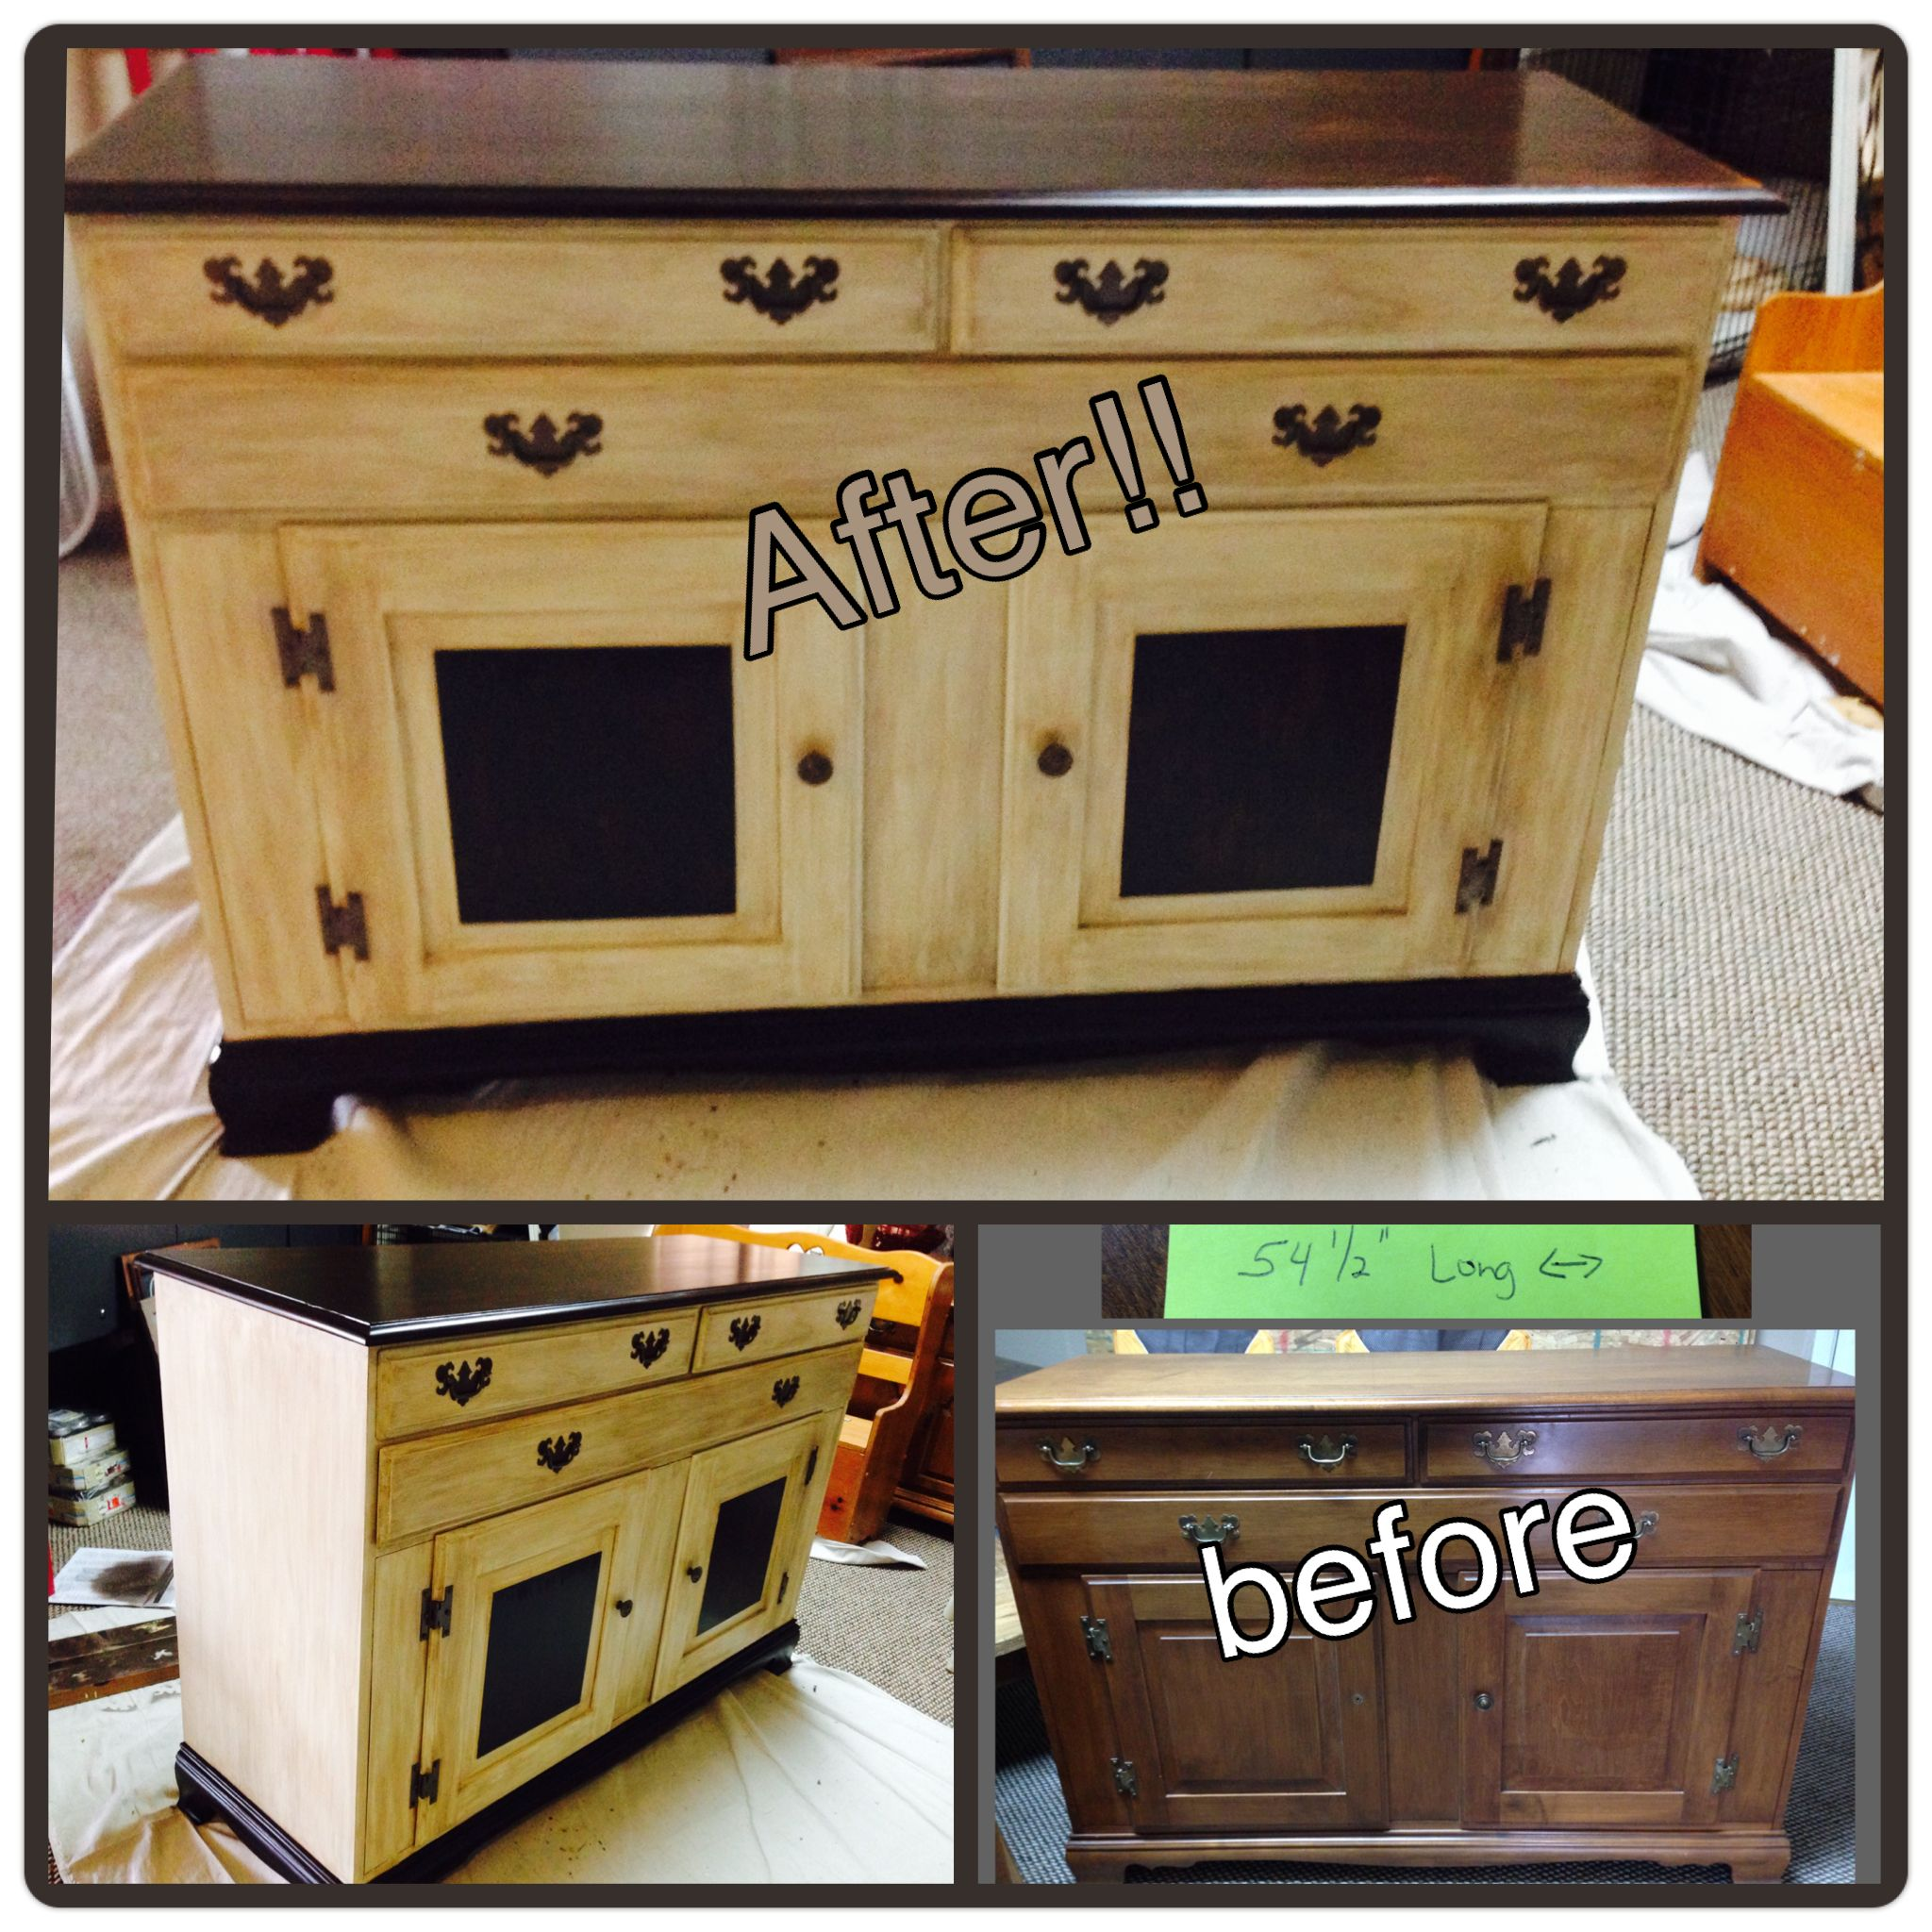 all service before chair cupboard after for refinishing s and wood becker furniture change color repair ackerman